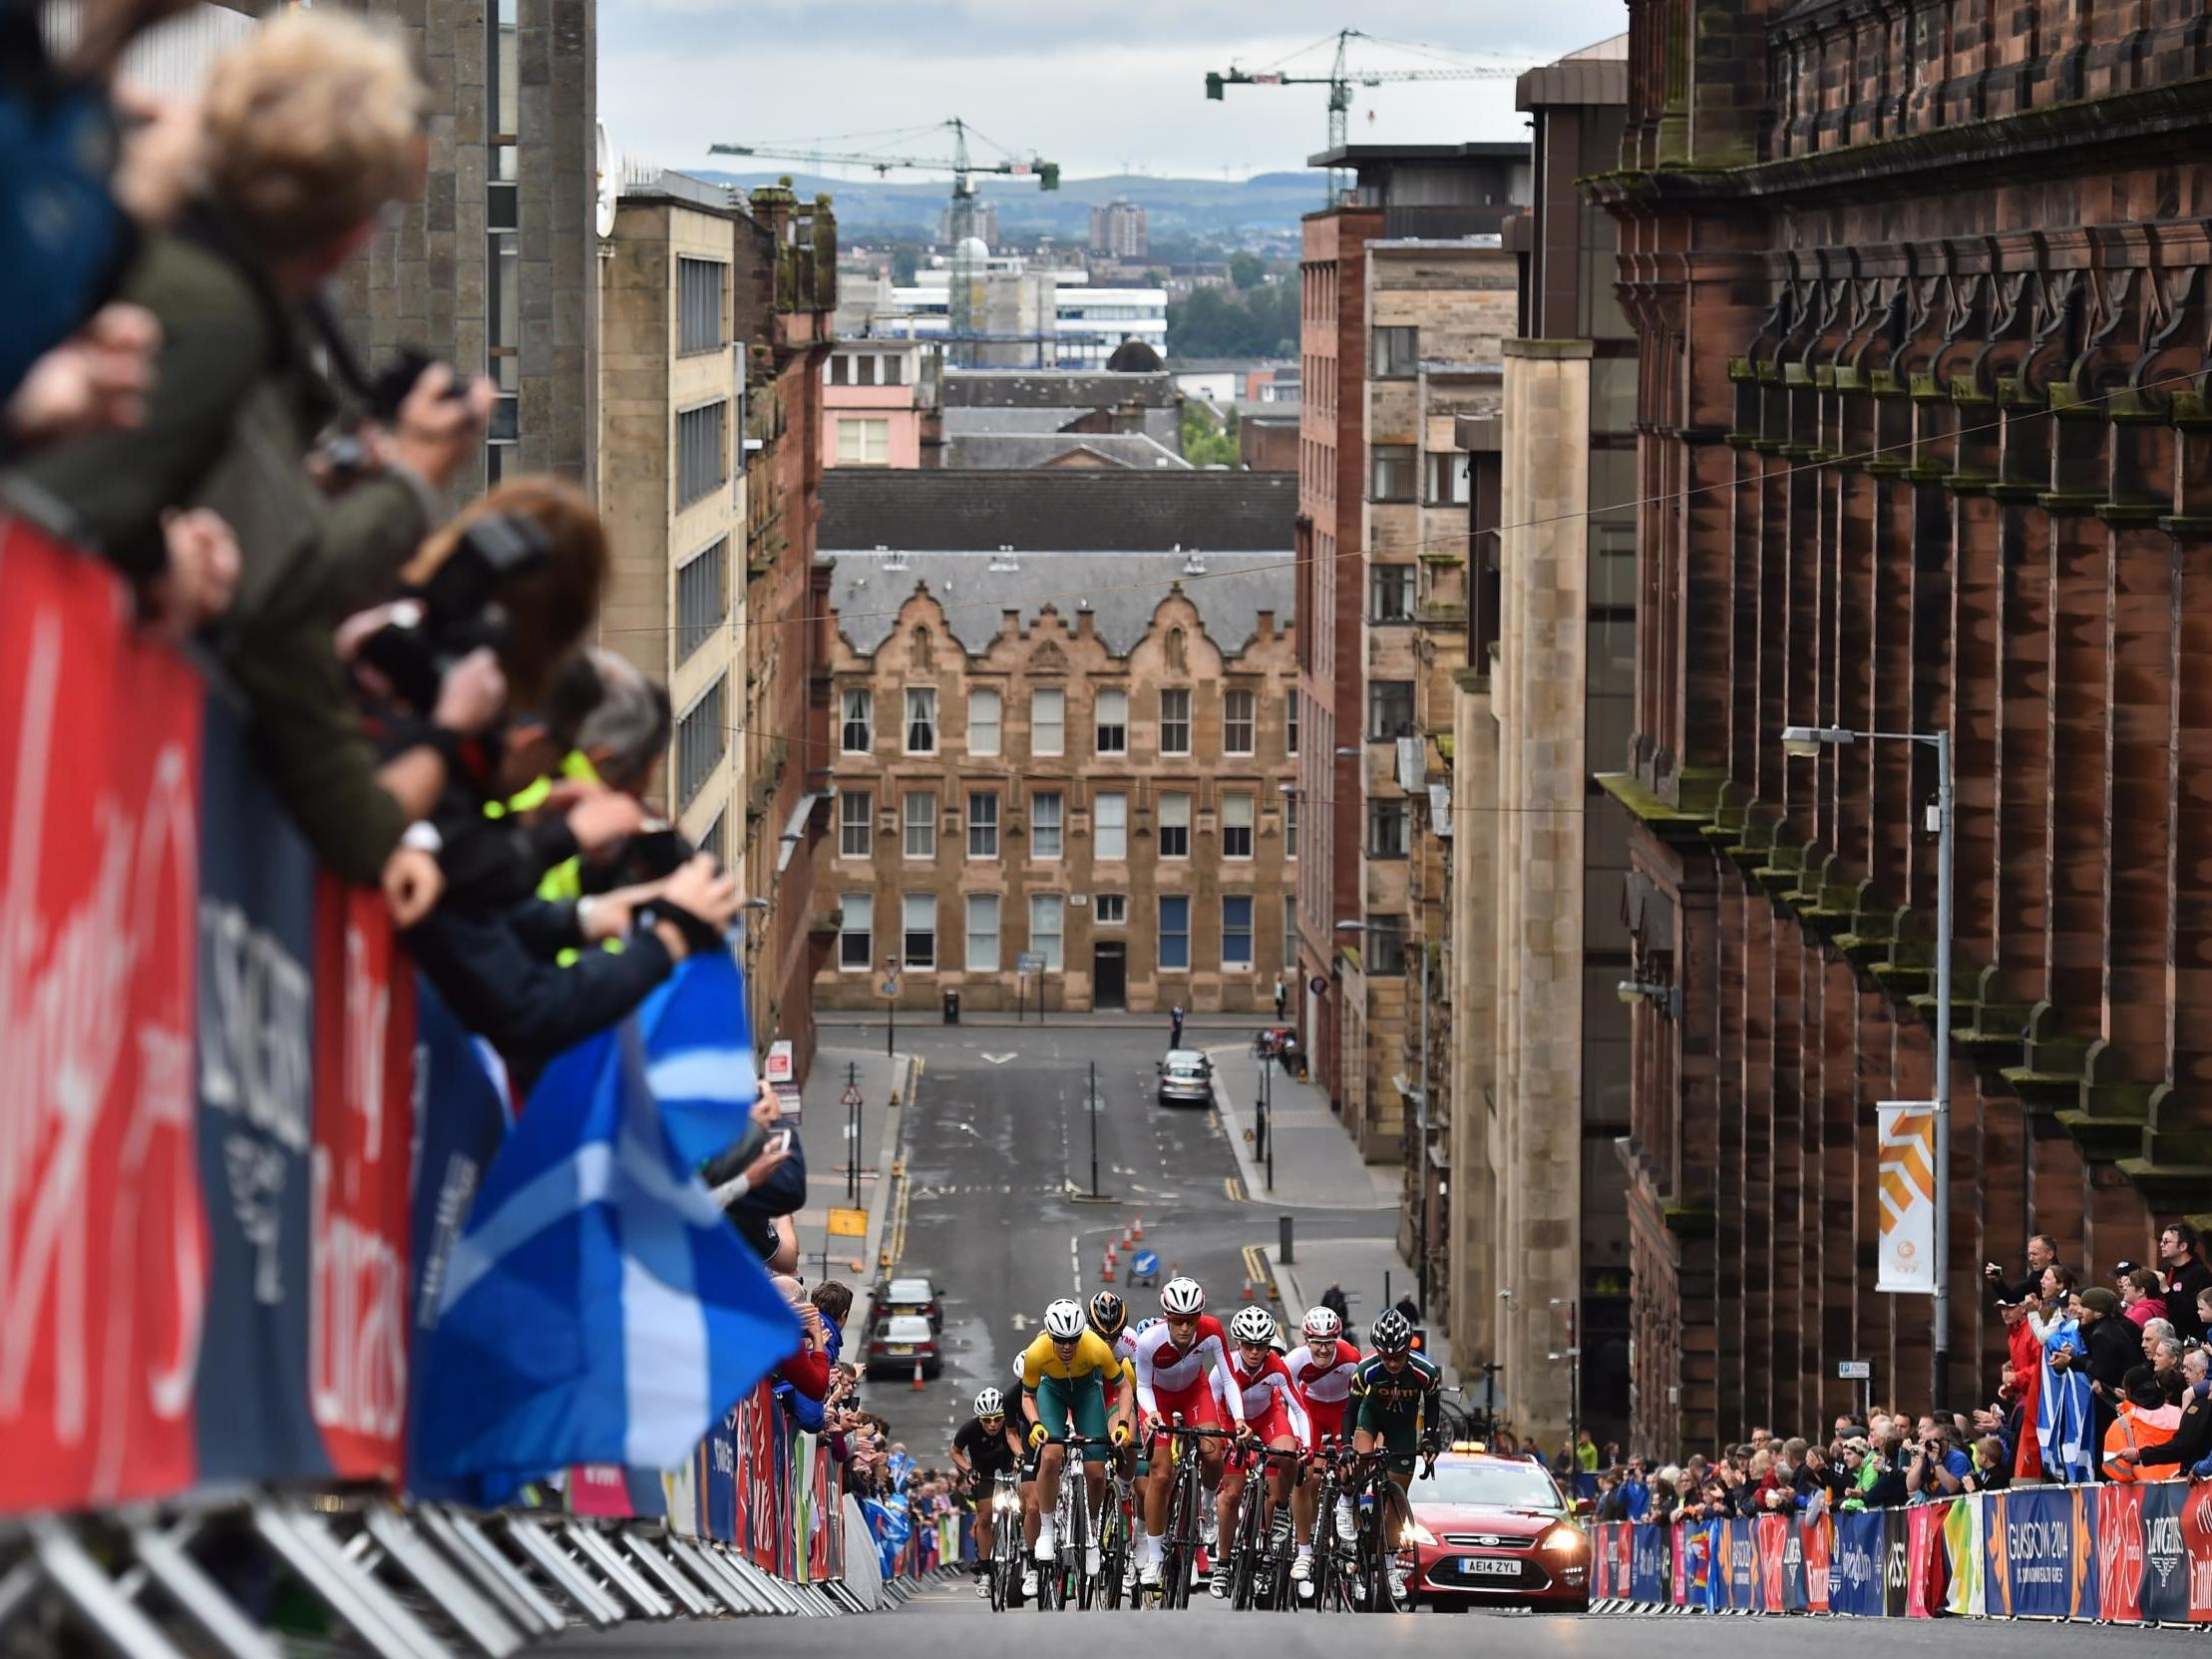 Women's Tour of Scotland 2019: The cycling race aiming to be the world's first climate-positive sports event